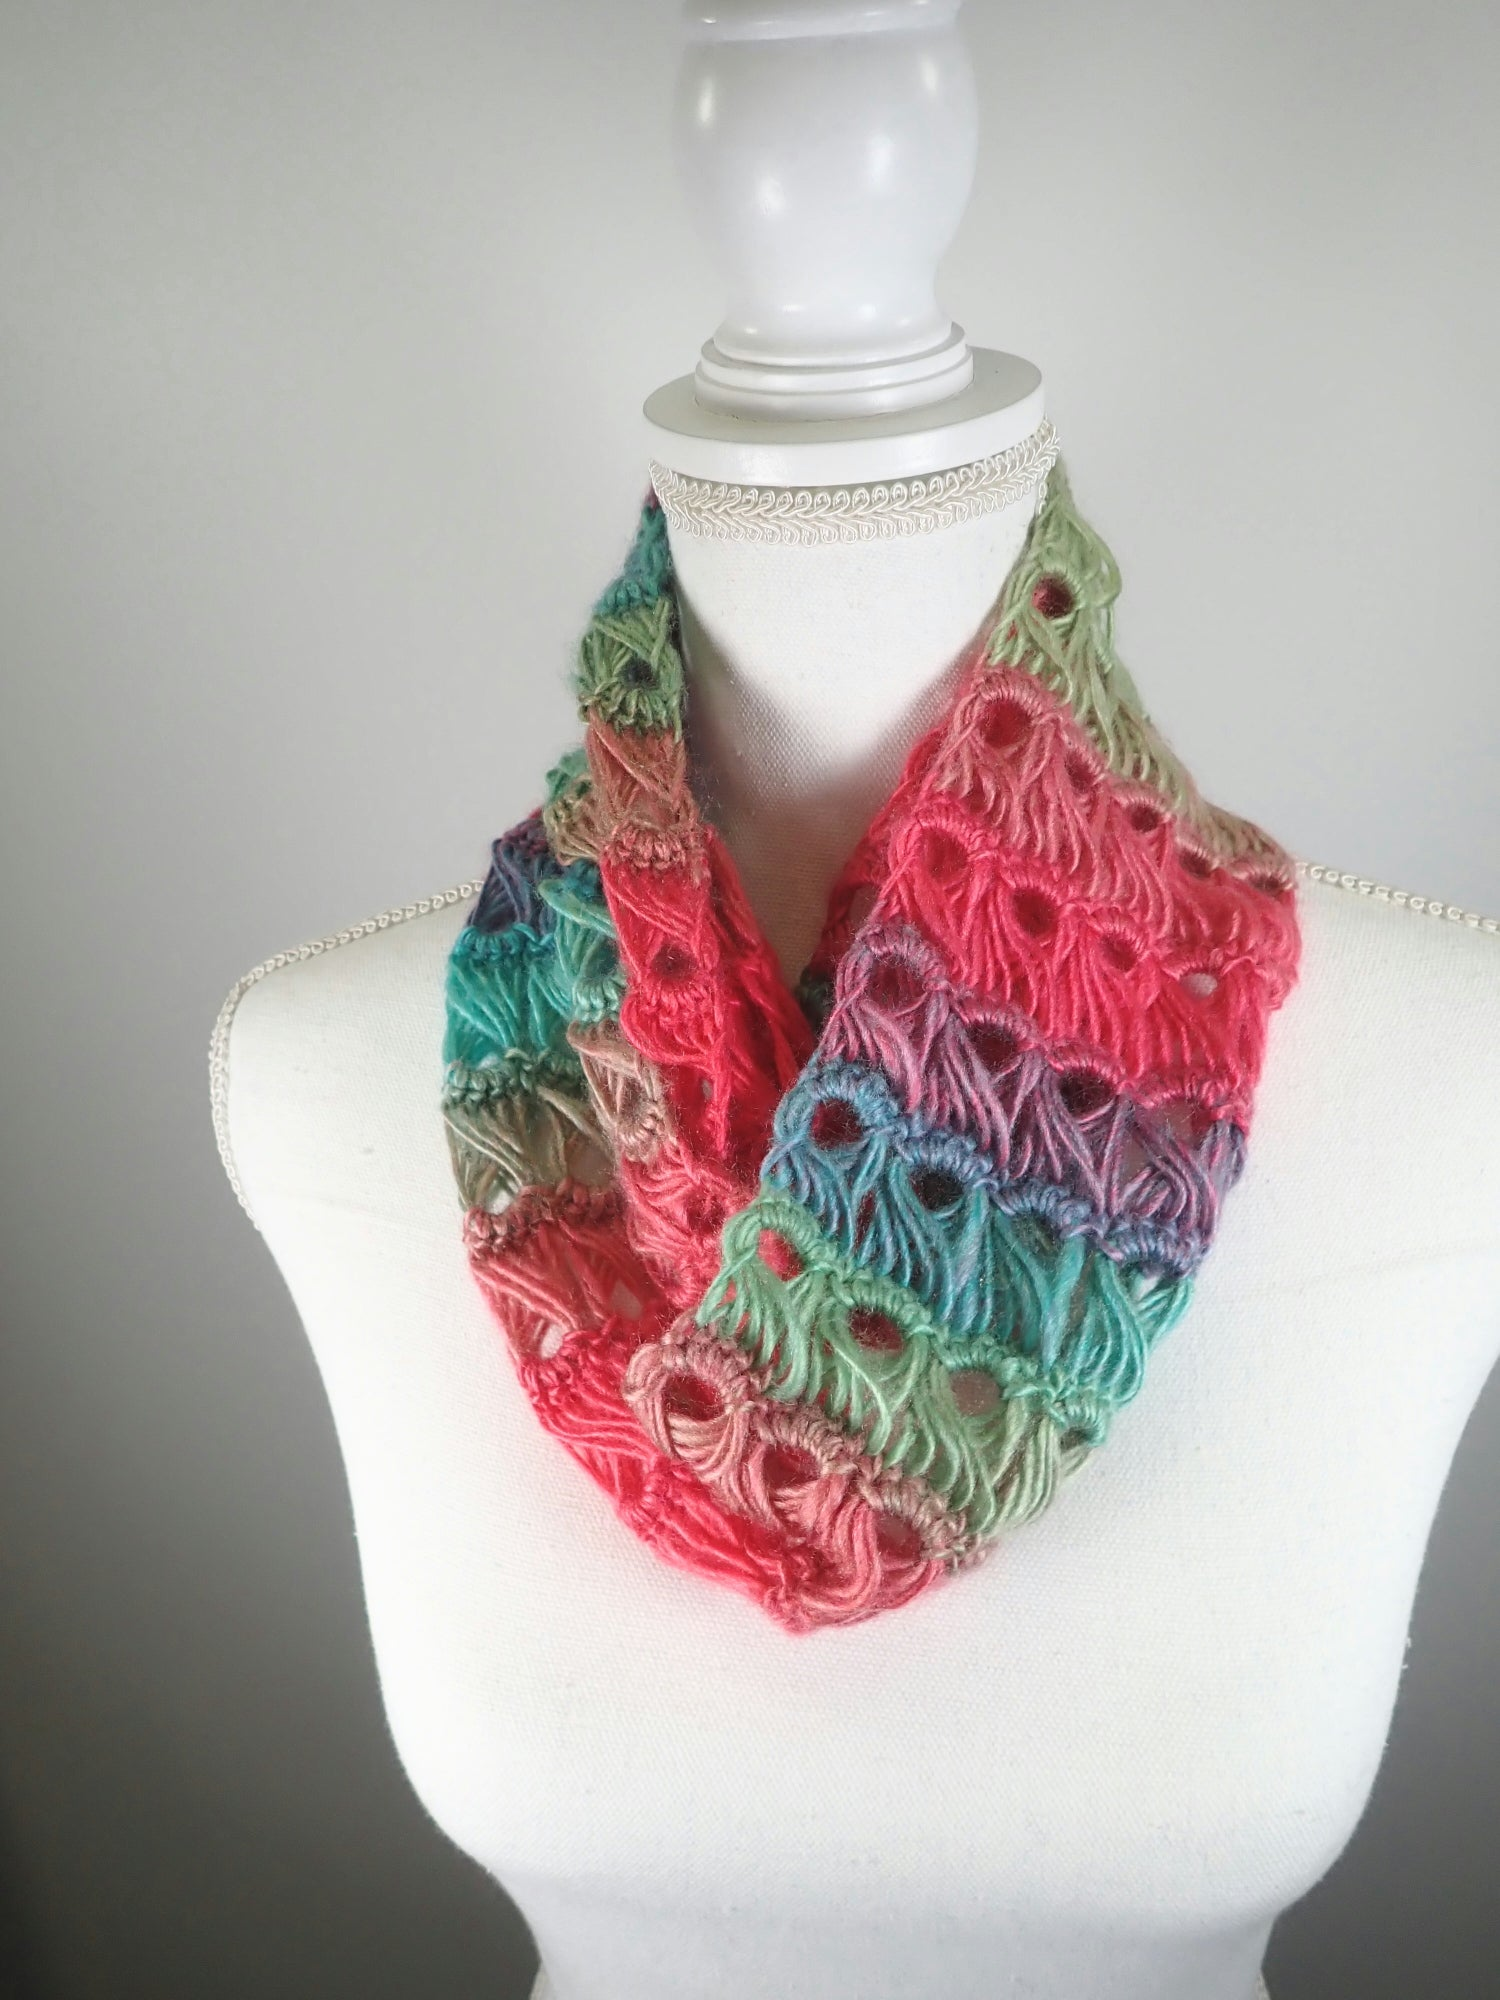 Gifts for her - Infinity scarf - womens crochet scarf - warm scarf - acrylic hand crochet scarf, - womens gift ideas - Colorful scarf